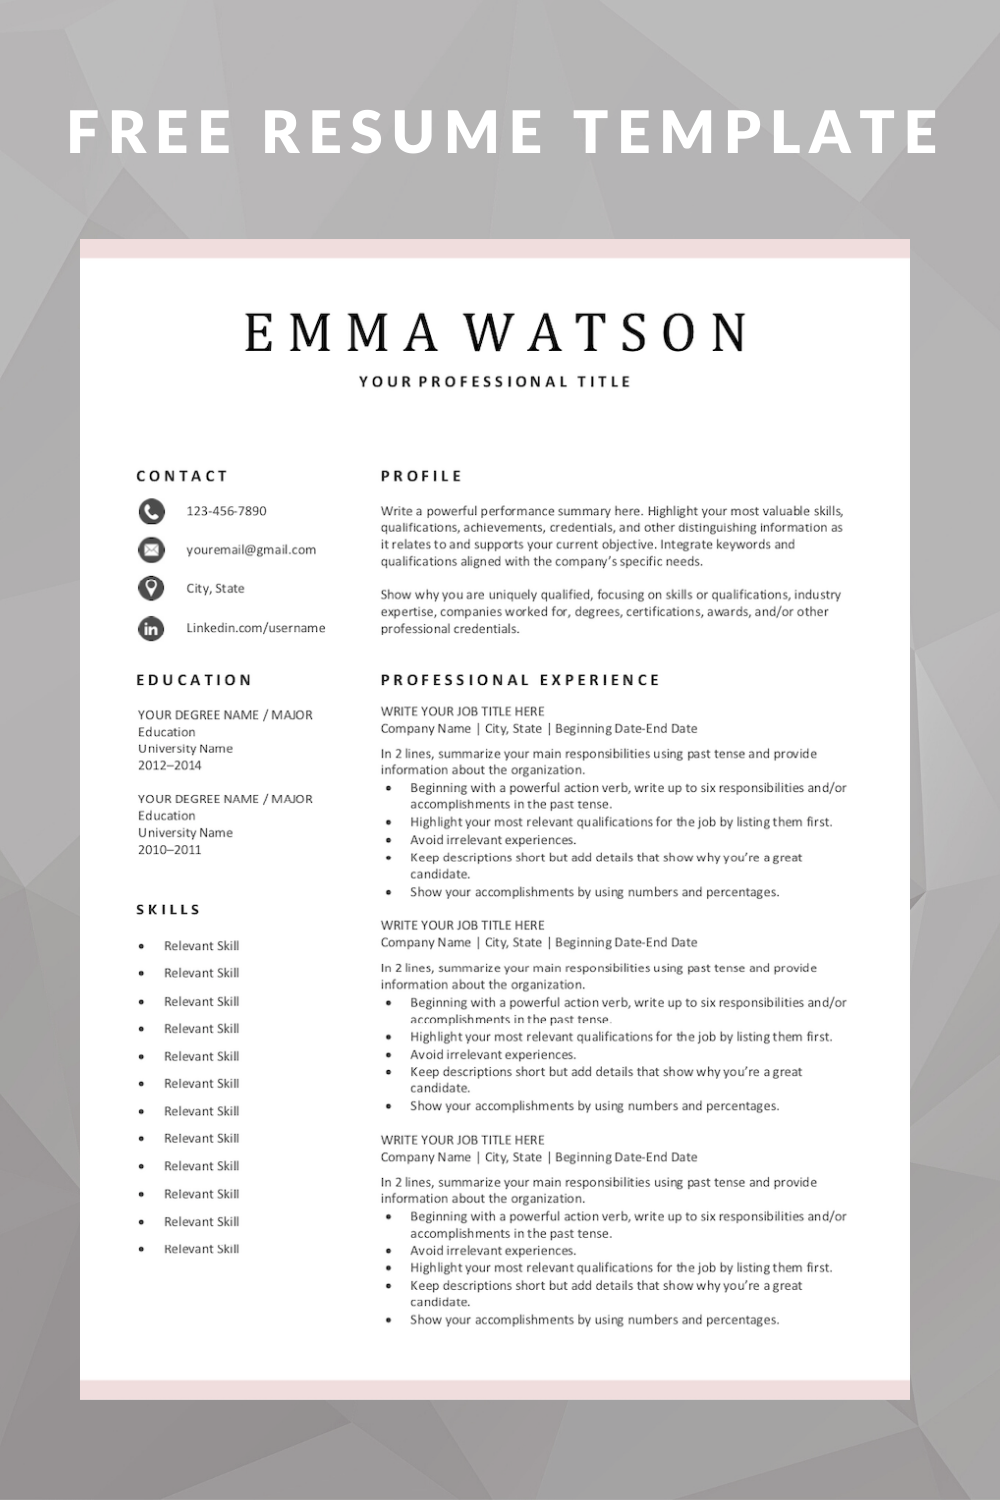 download our completely free  simple resume template